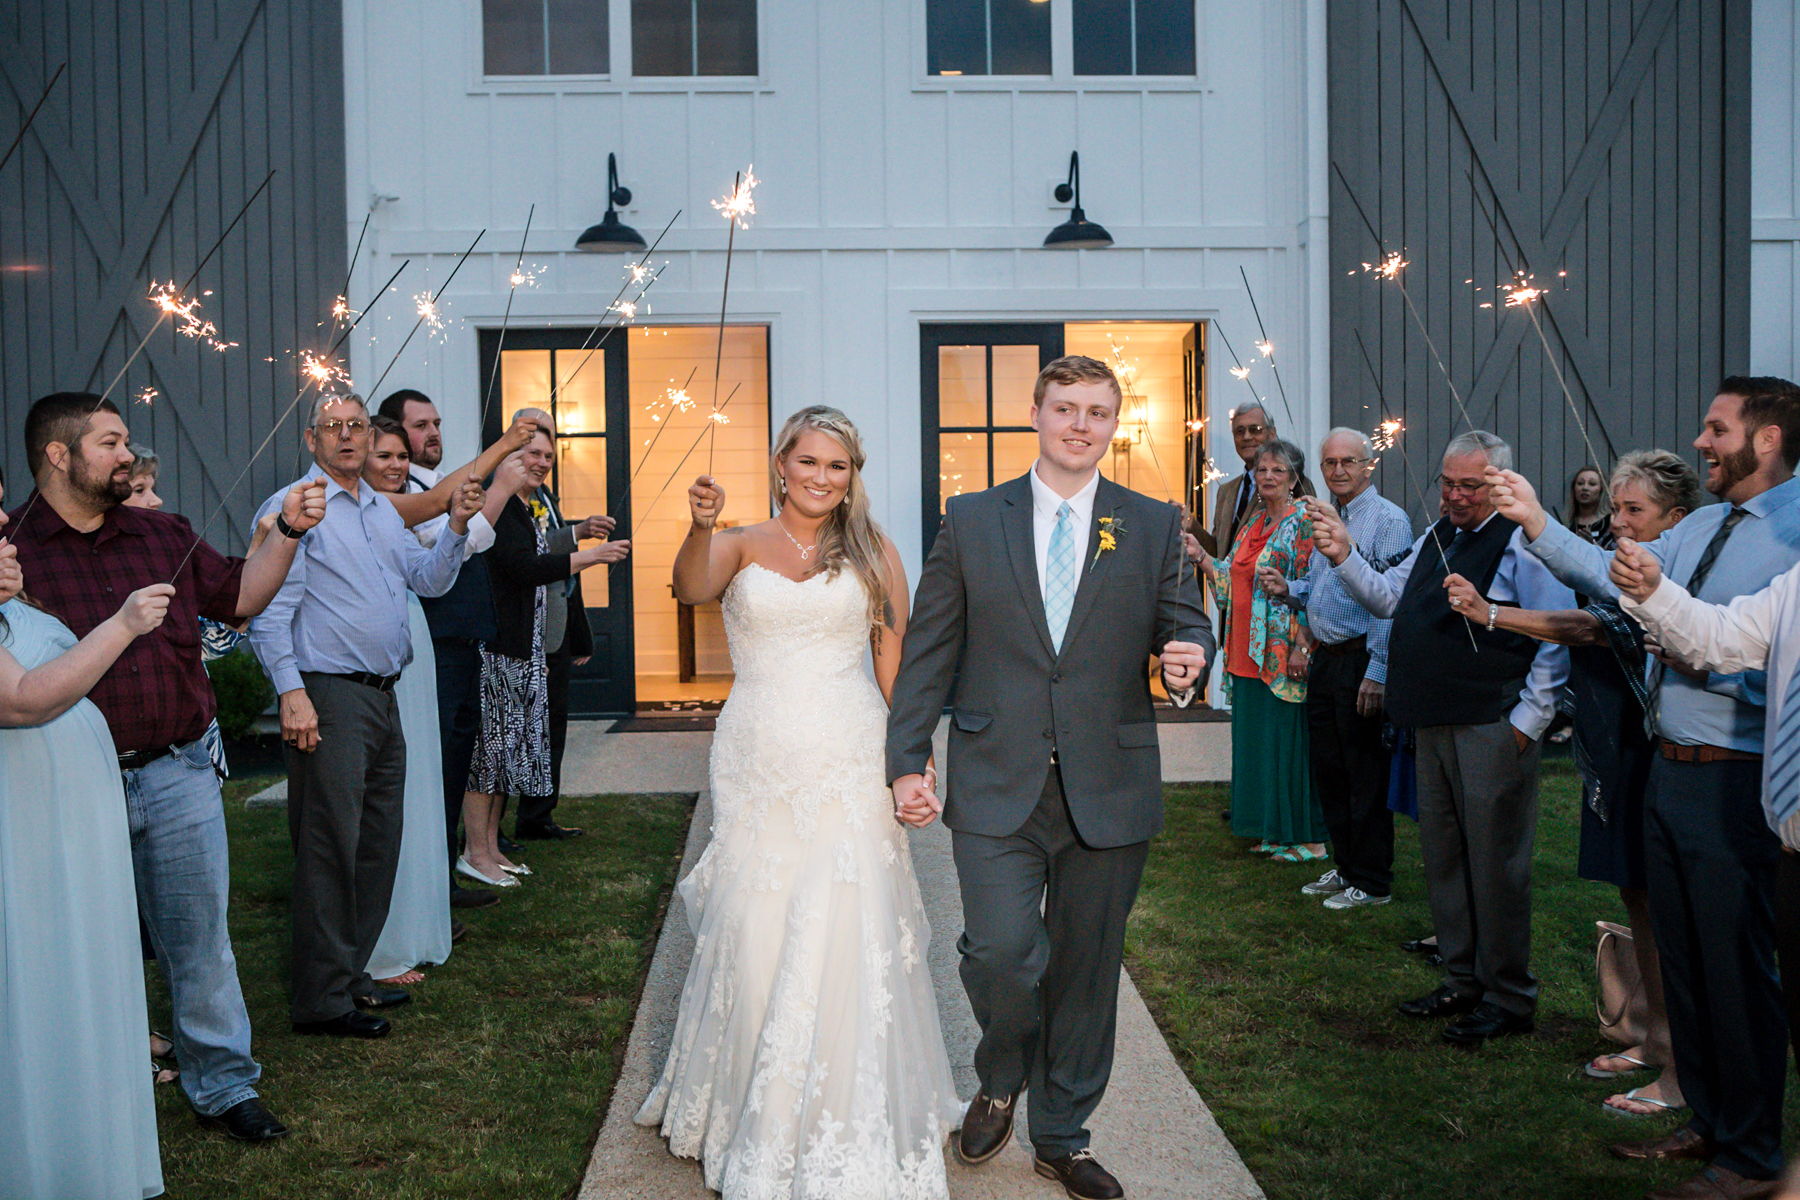 sparkler-exit-wedding-reception.jpg